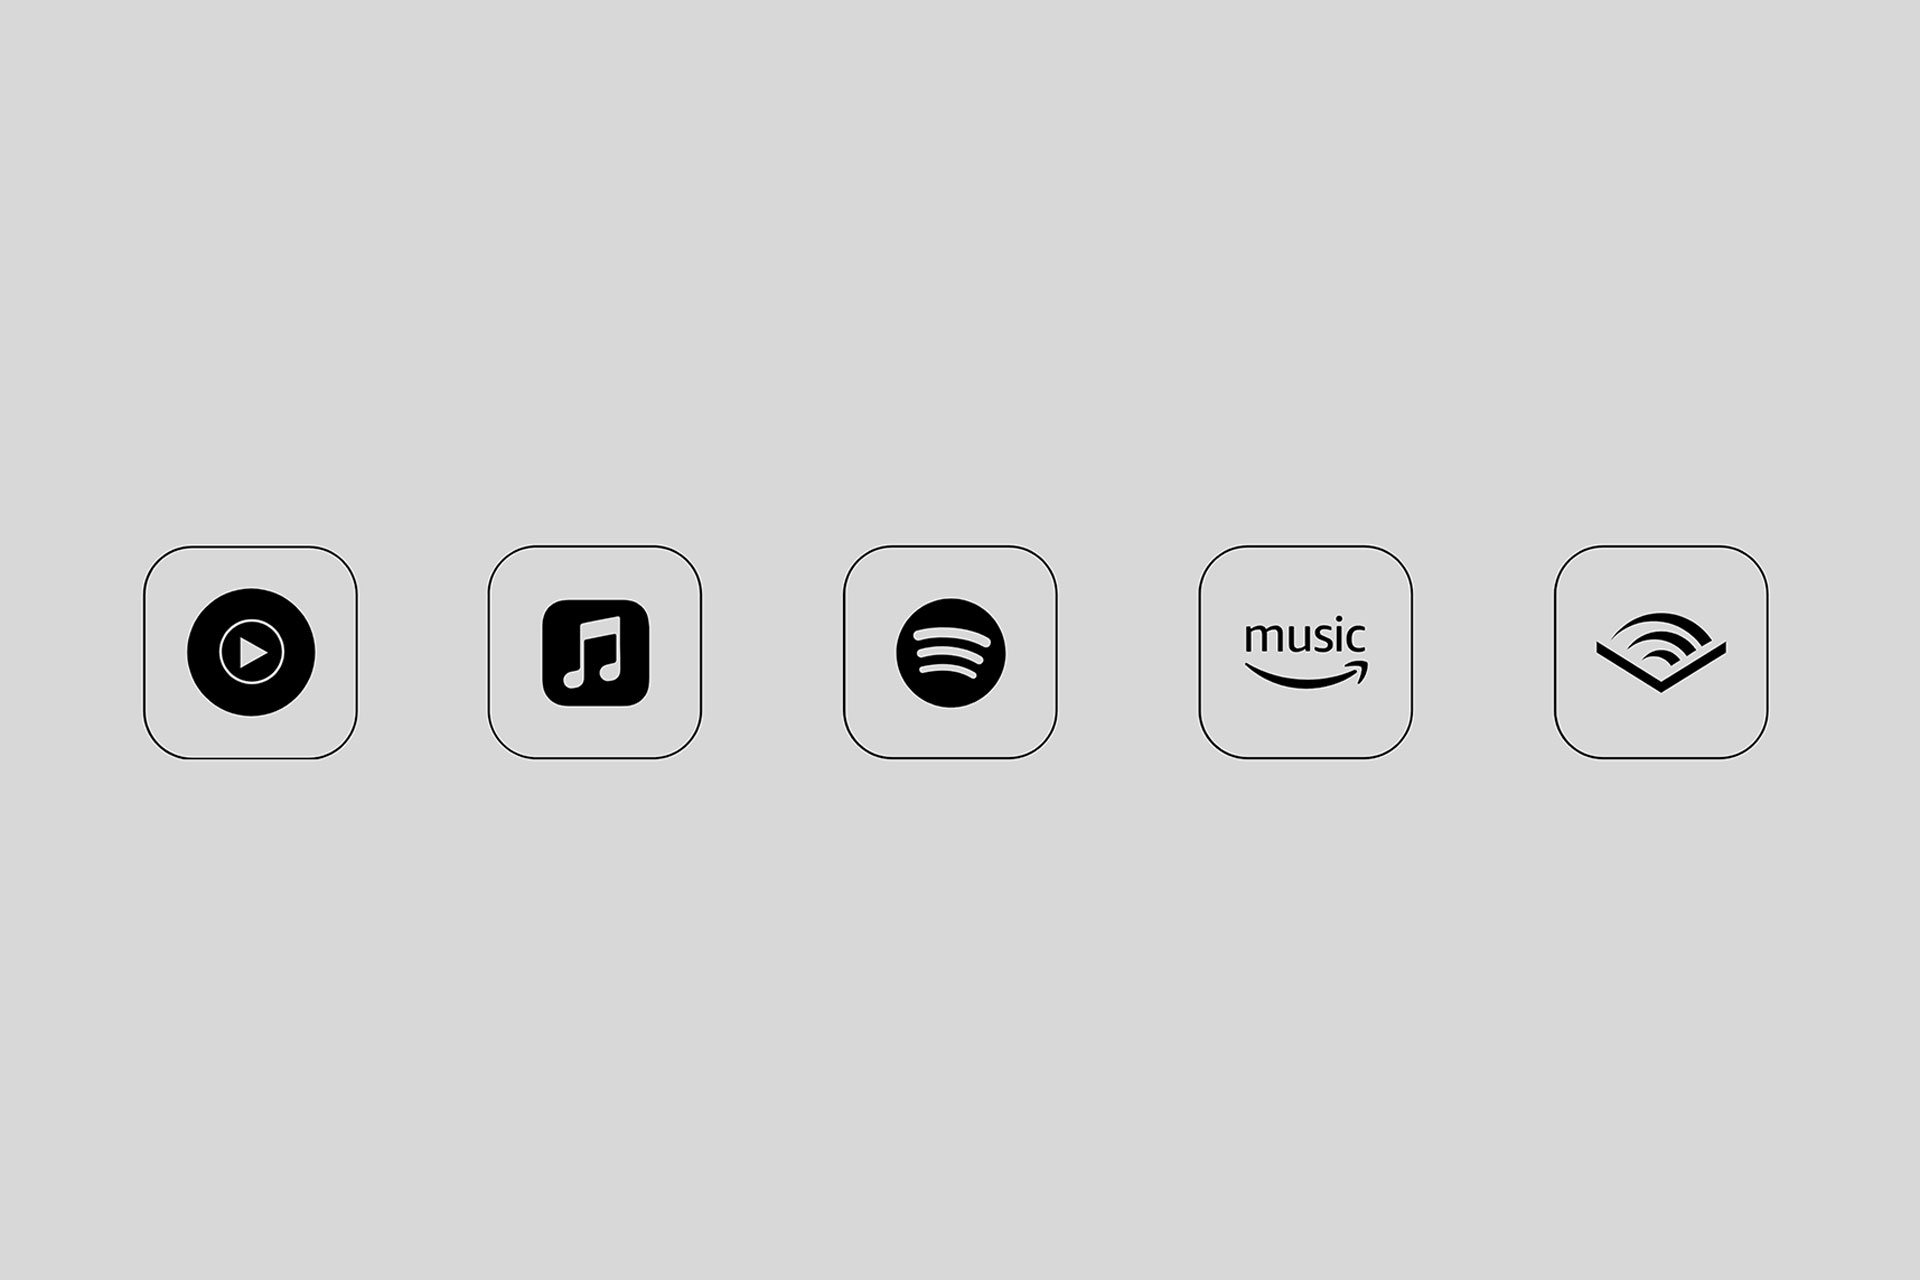 AB-Audio-Visual-Sonos-Apps-Image-1920x1280